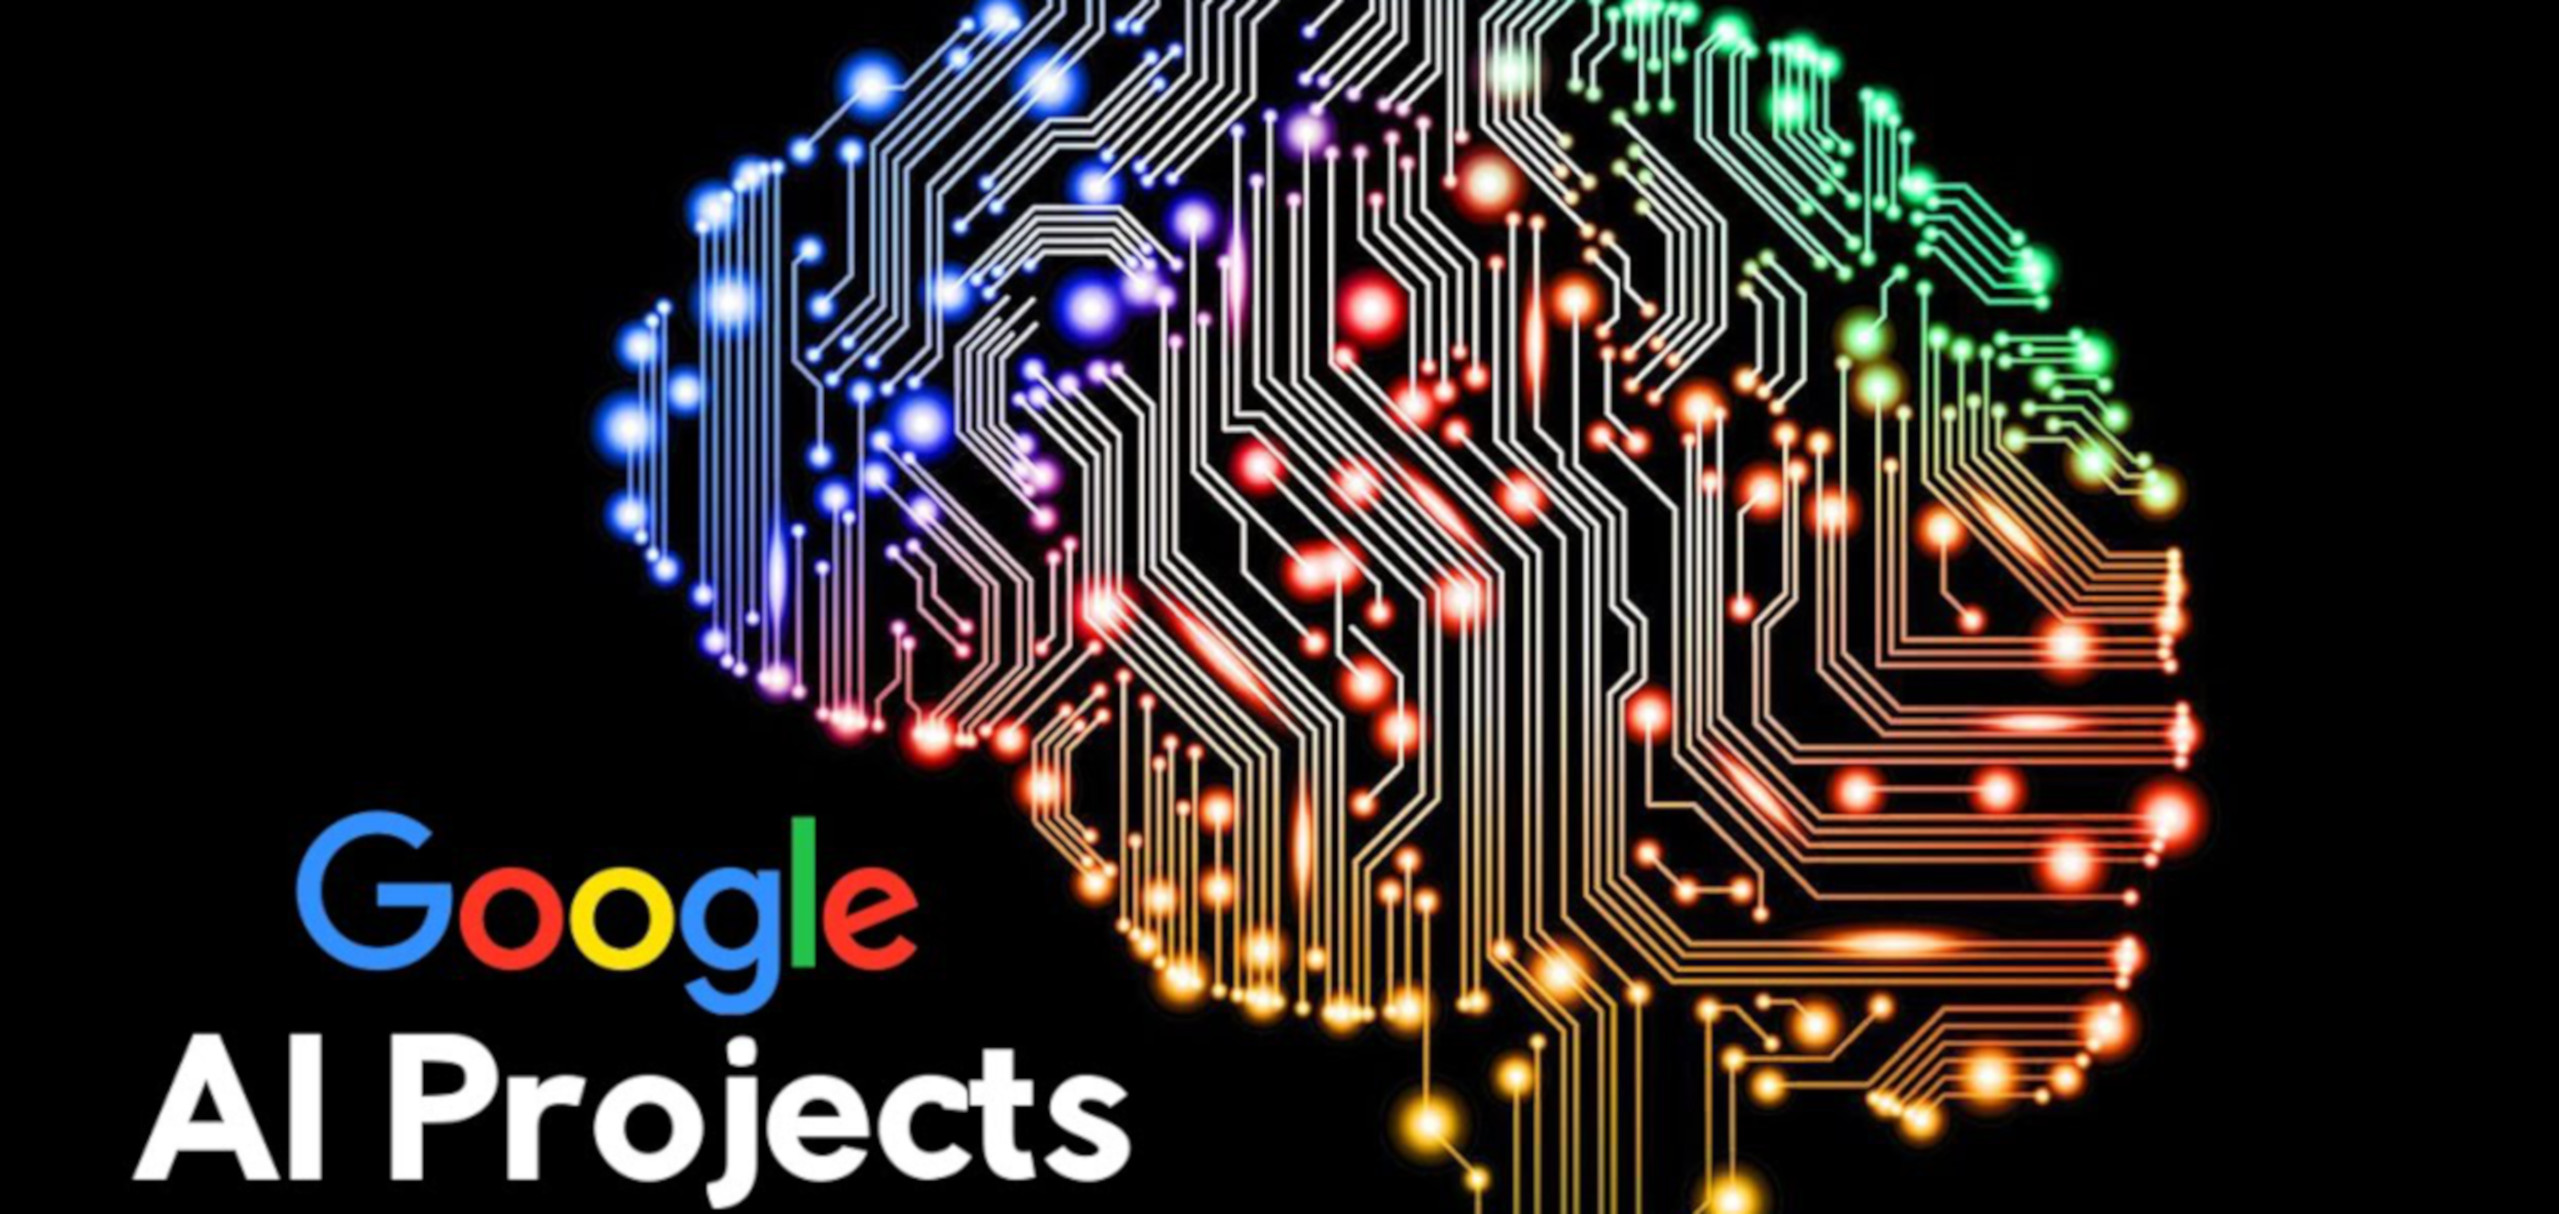 Google Vision AI: The beginning of the end for Alt Text?